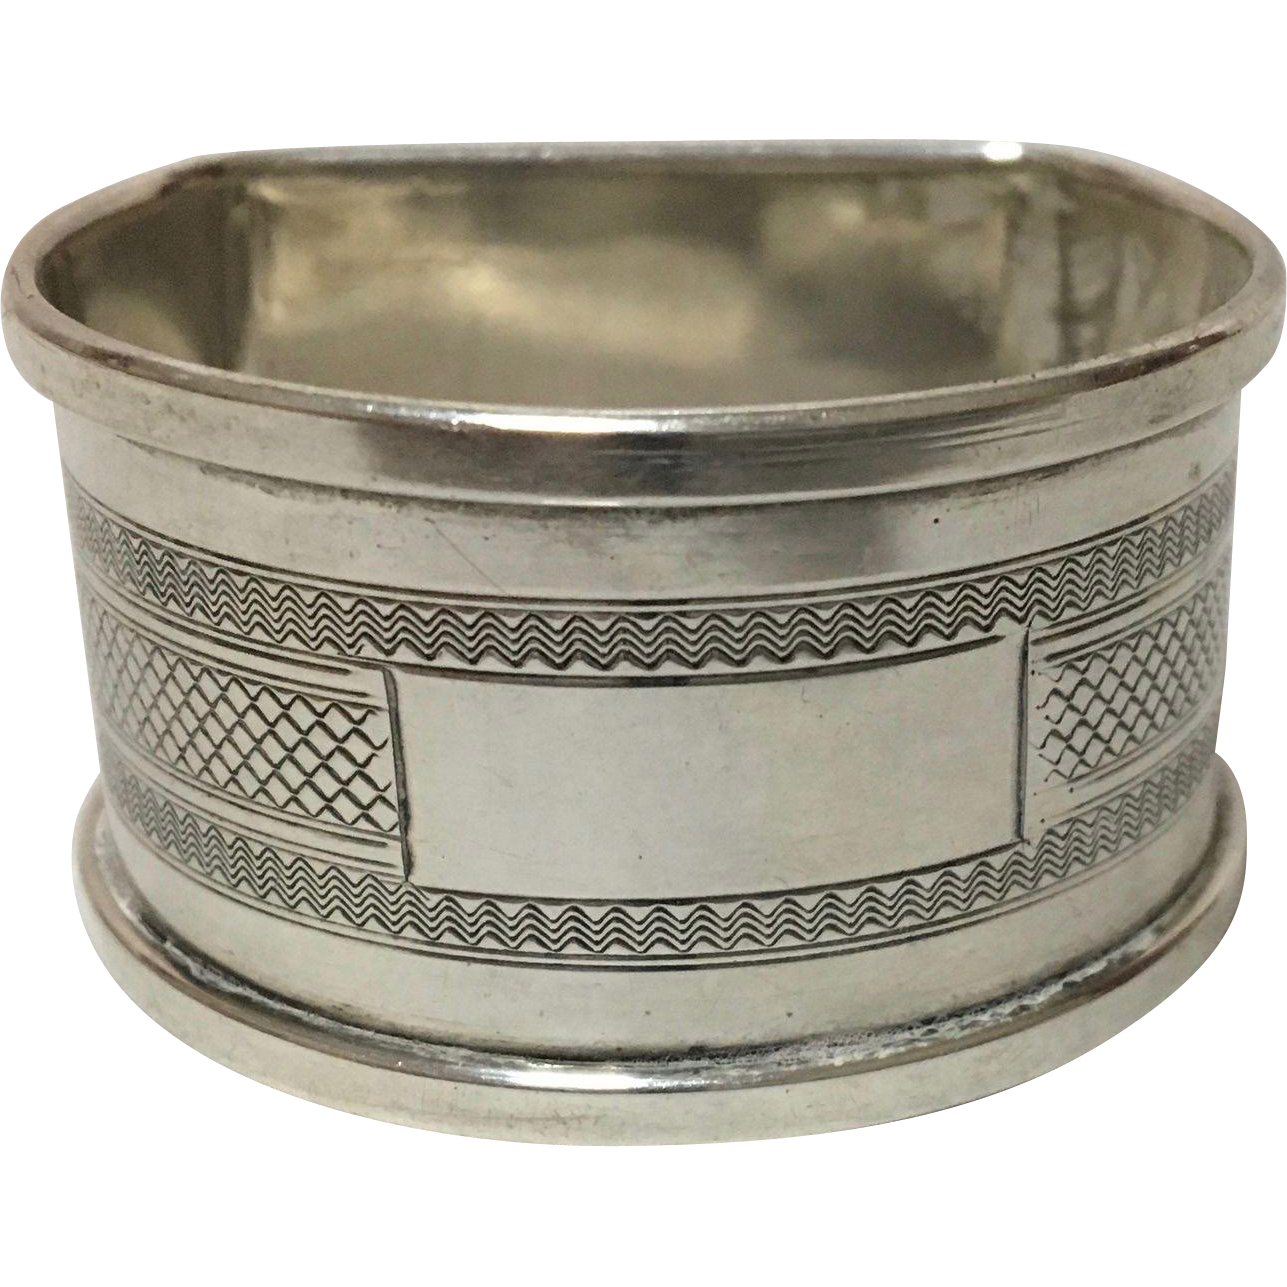 English Sterling Silver Napkin Ring, Hallmarked Birmingham, 1949, Henry Griffith & Son